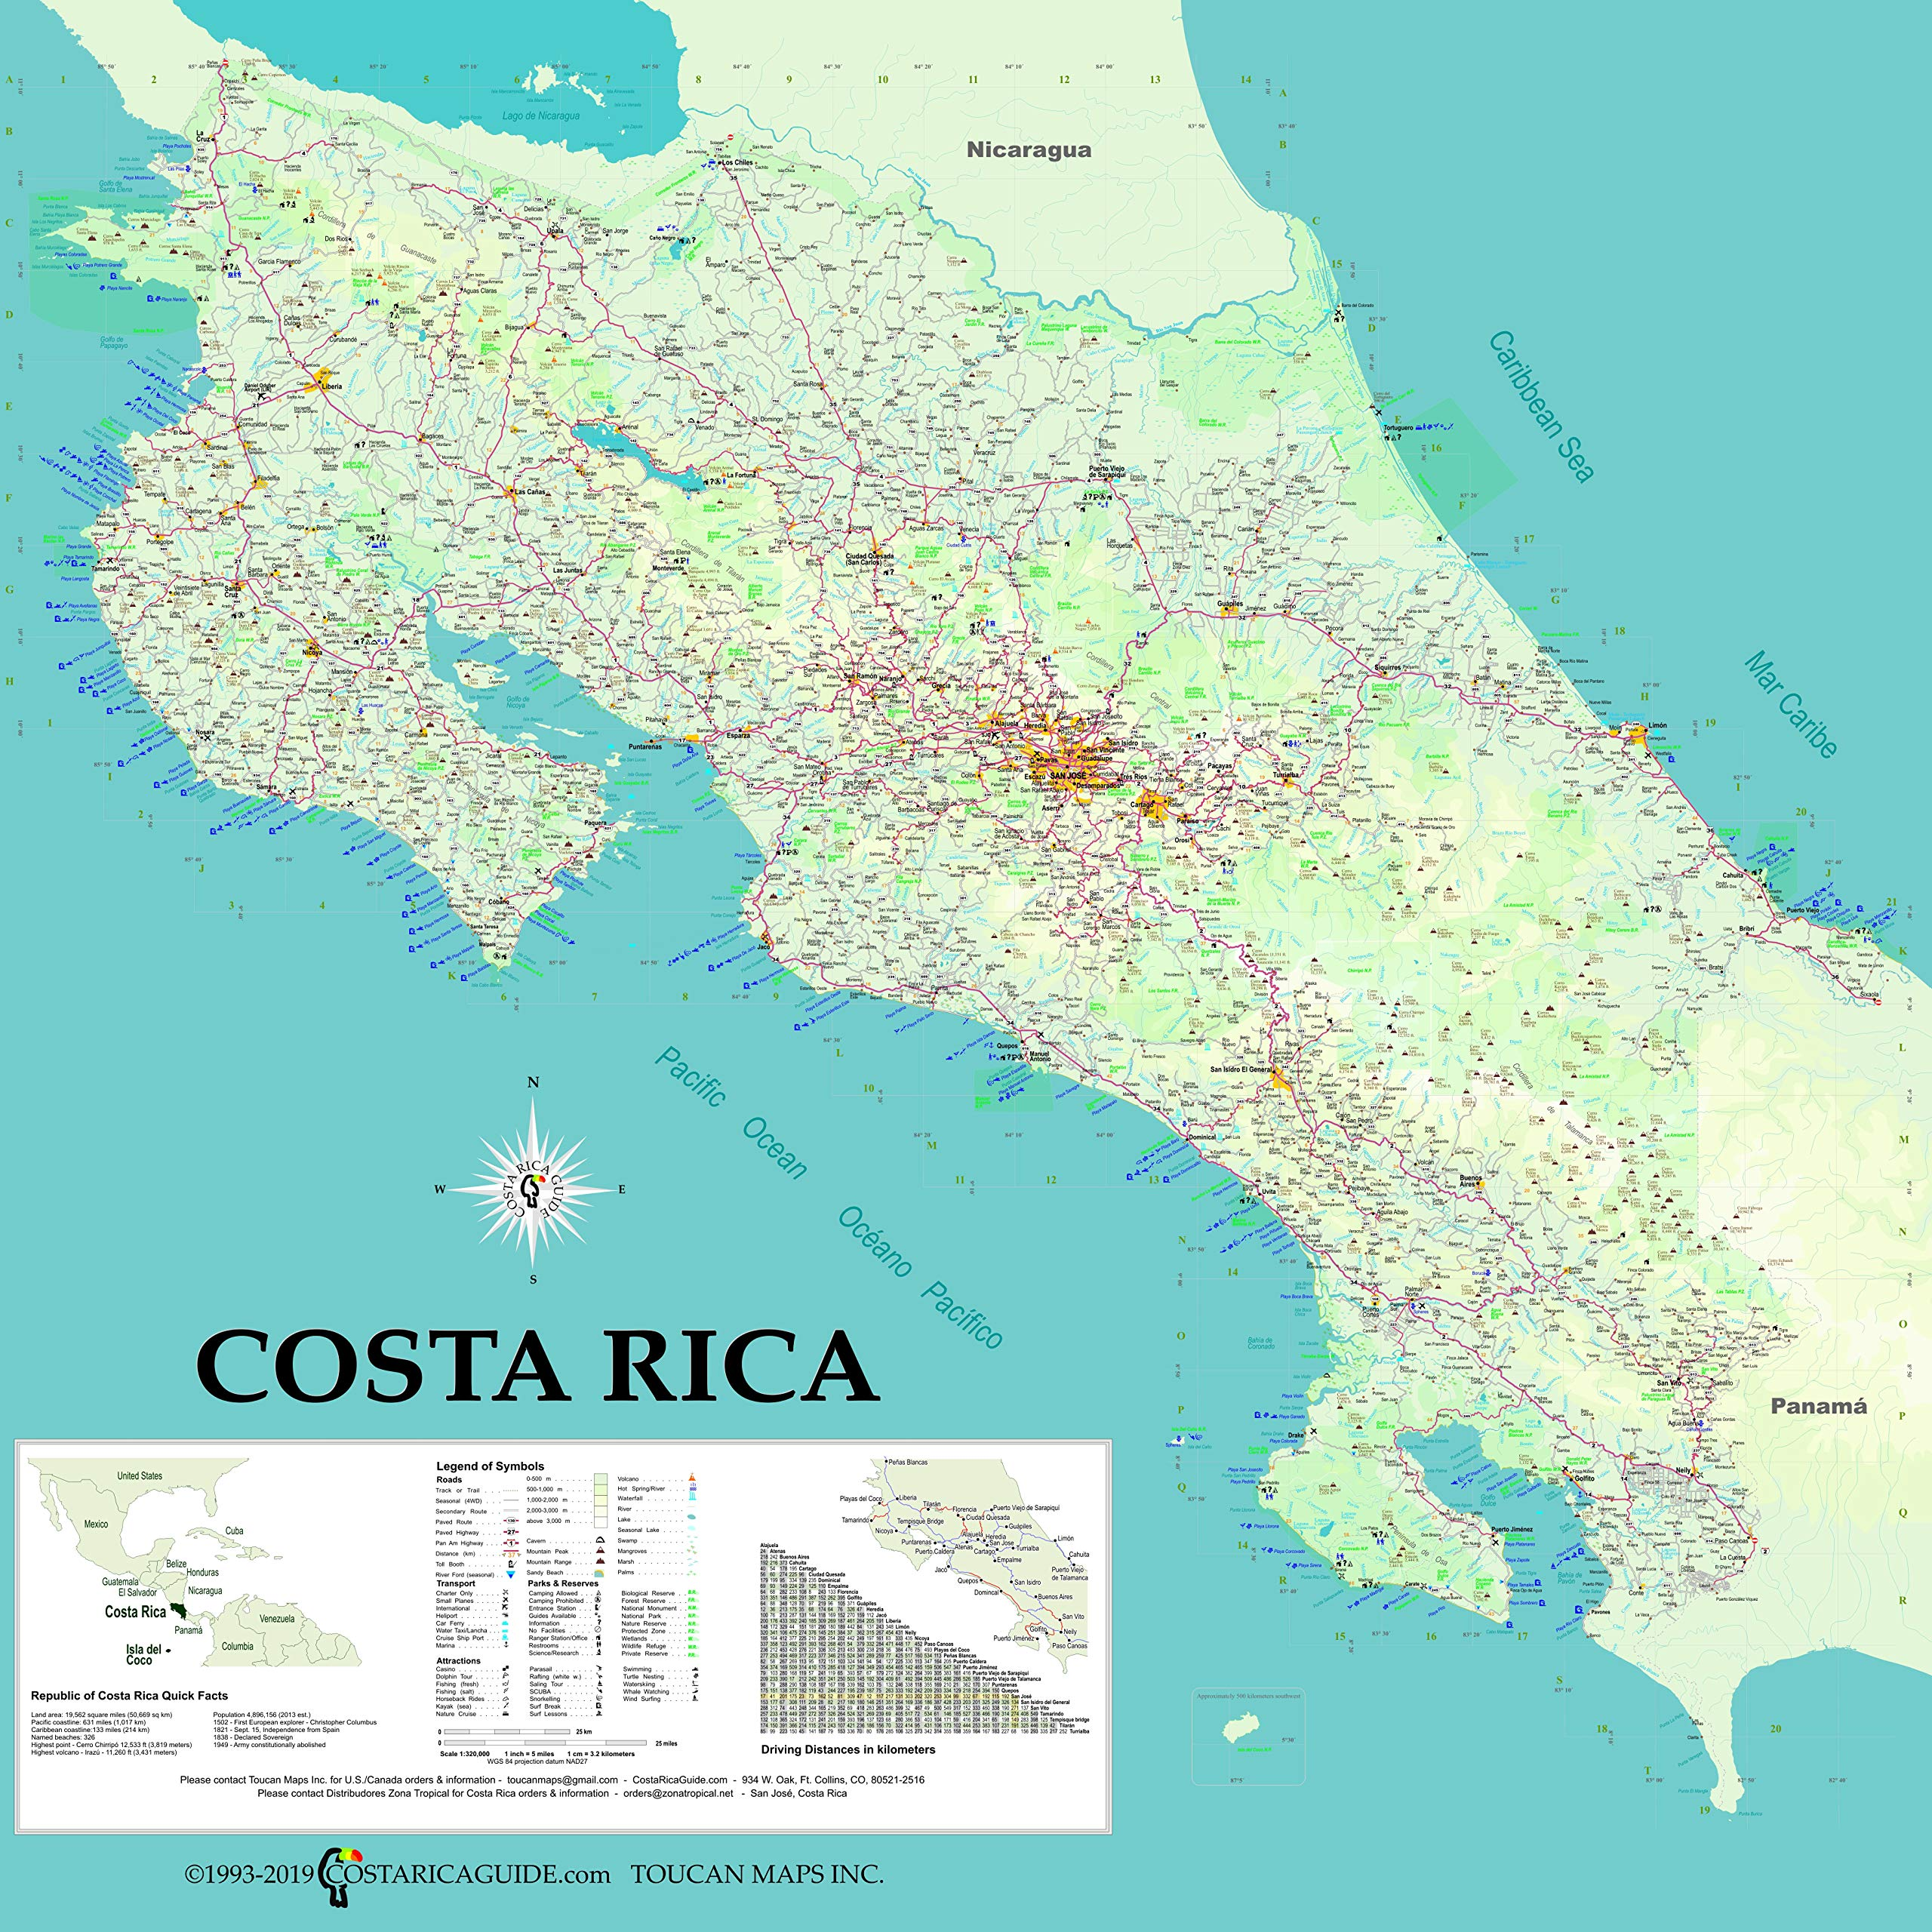 Costa Rica Wall Map Suzanne Krueger Koplin Ray Krueger Koplin Toucan Maps 9780976373377 Amazon Com Books